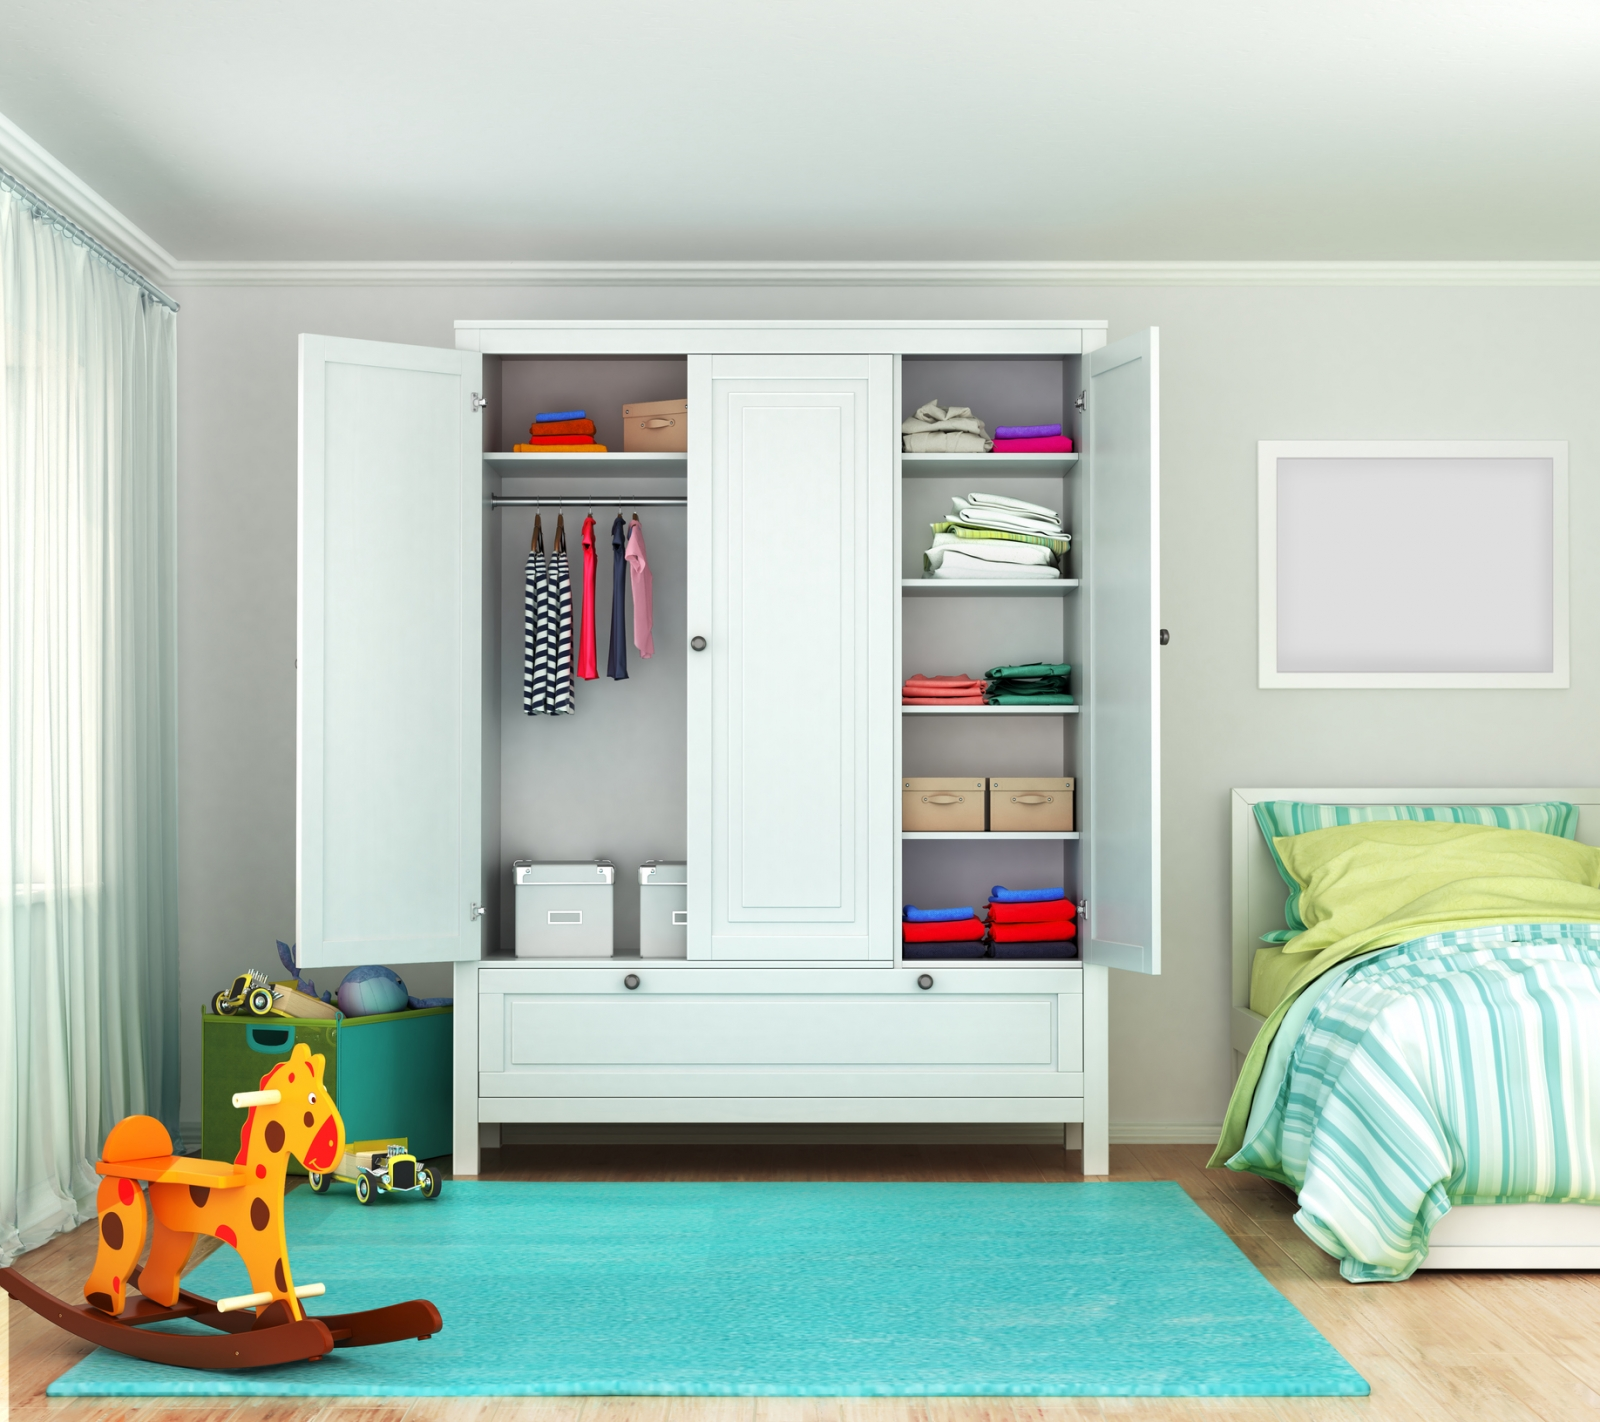 No Closet Solutions For Storage Challenged Bedrooms Streeteasy